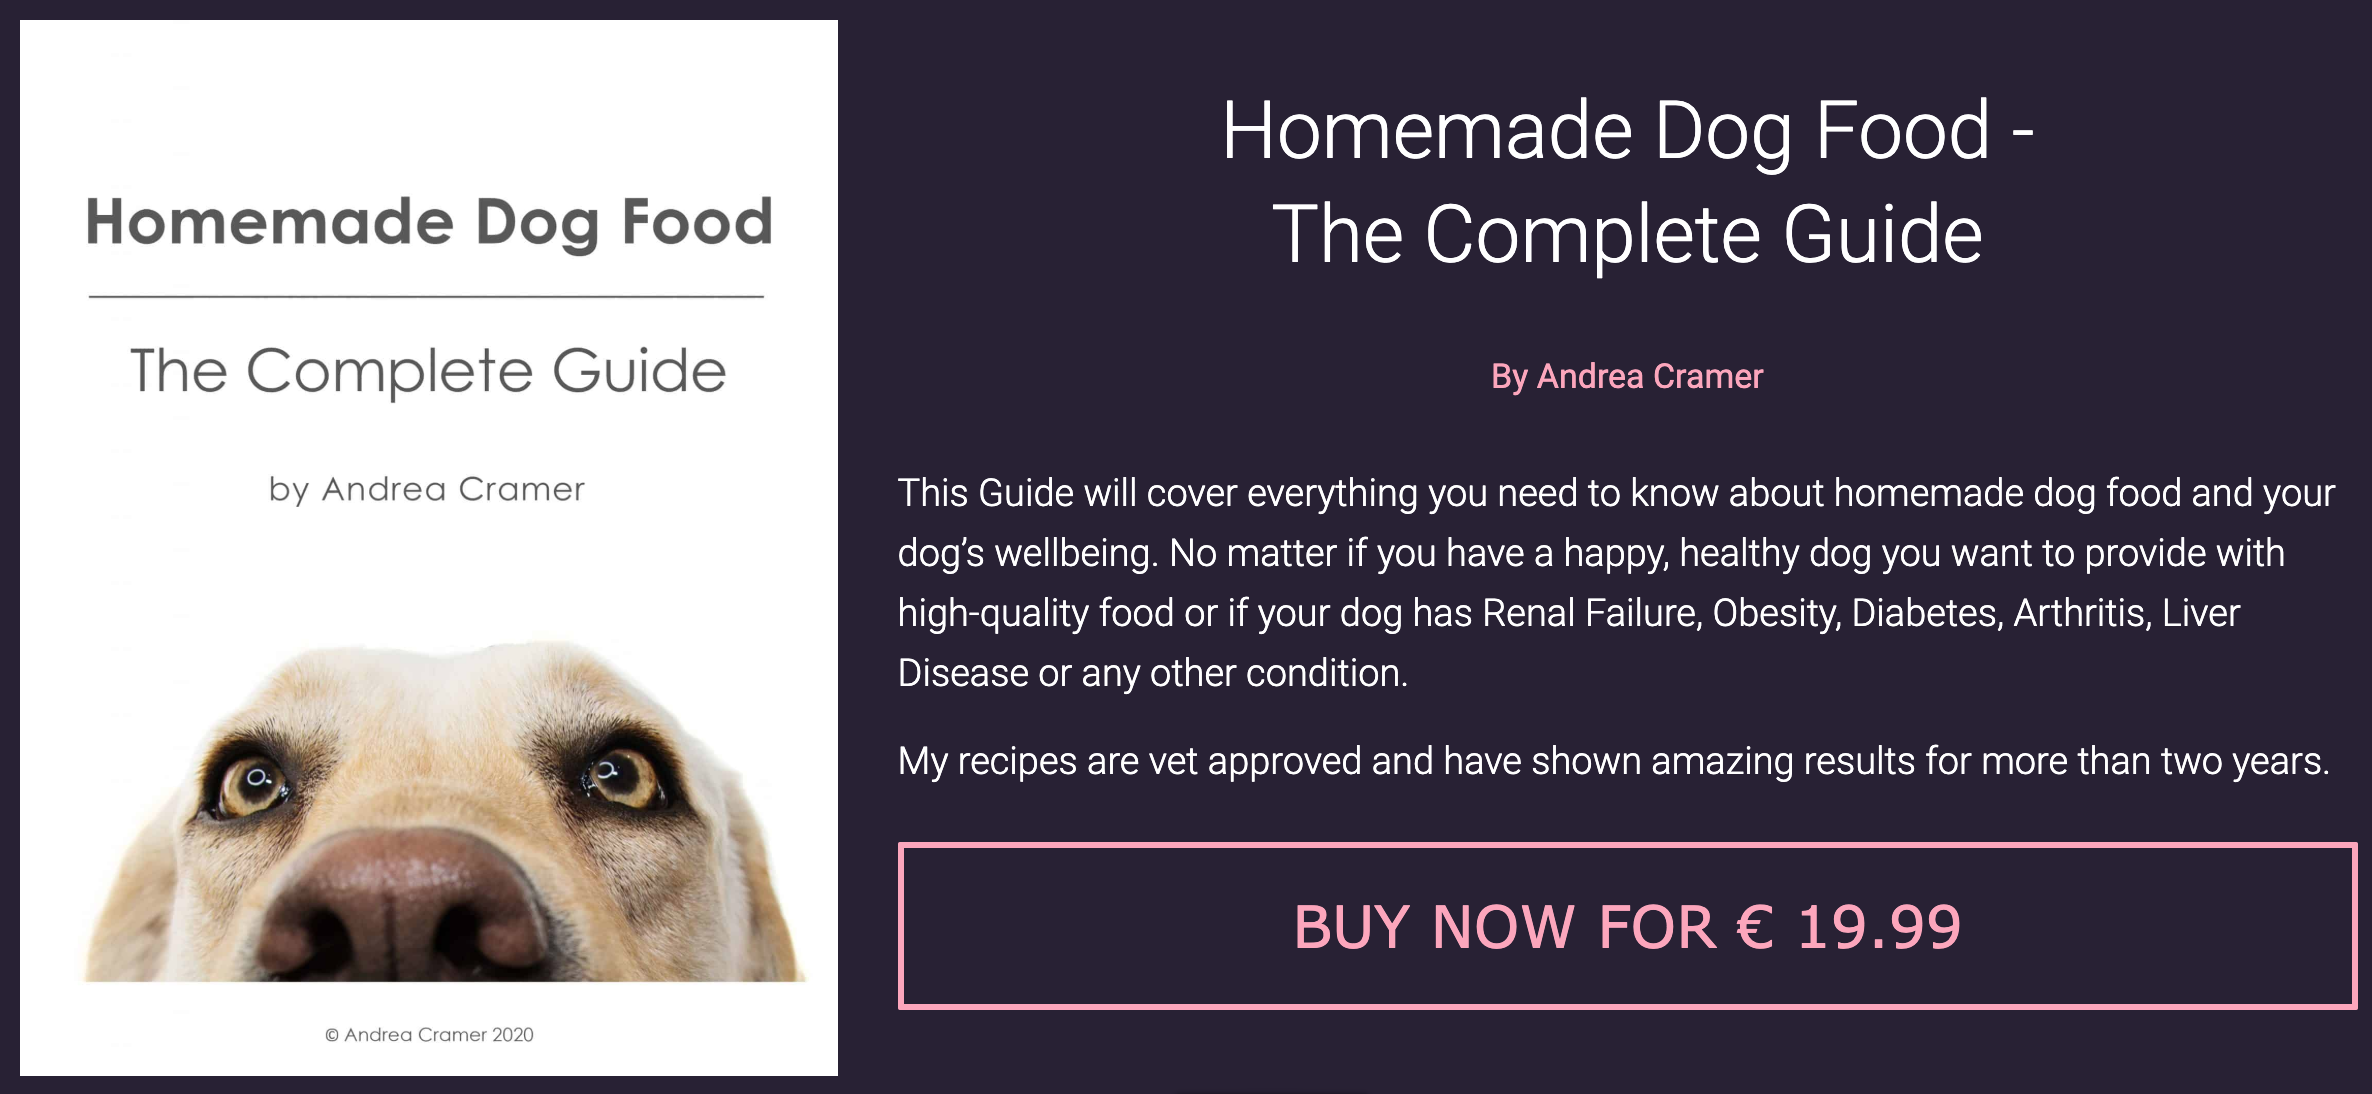 Homemade Dog Food - The Complete Guide